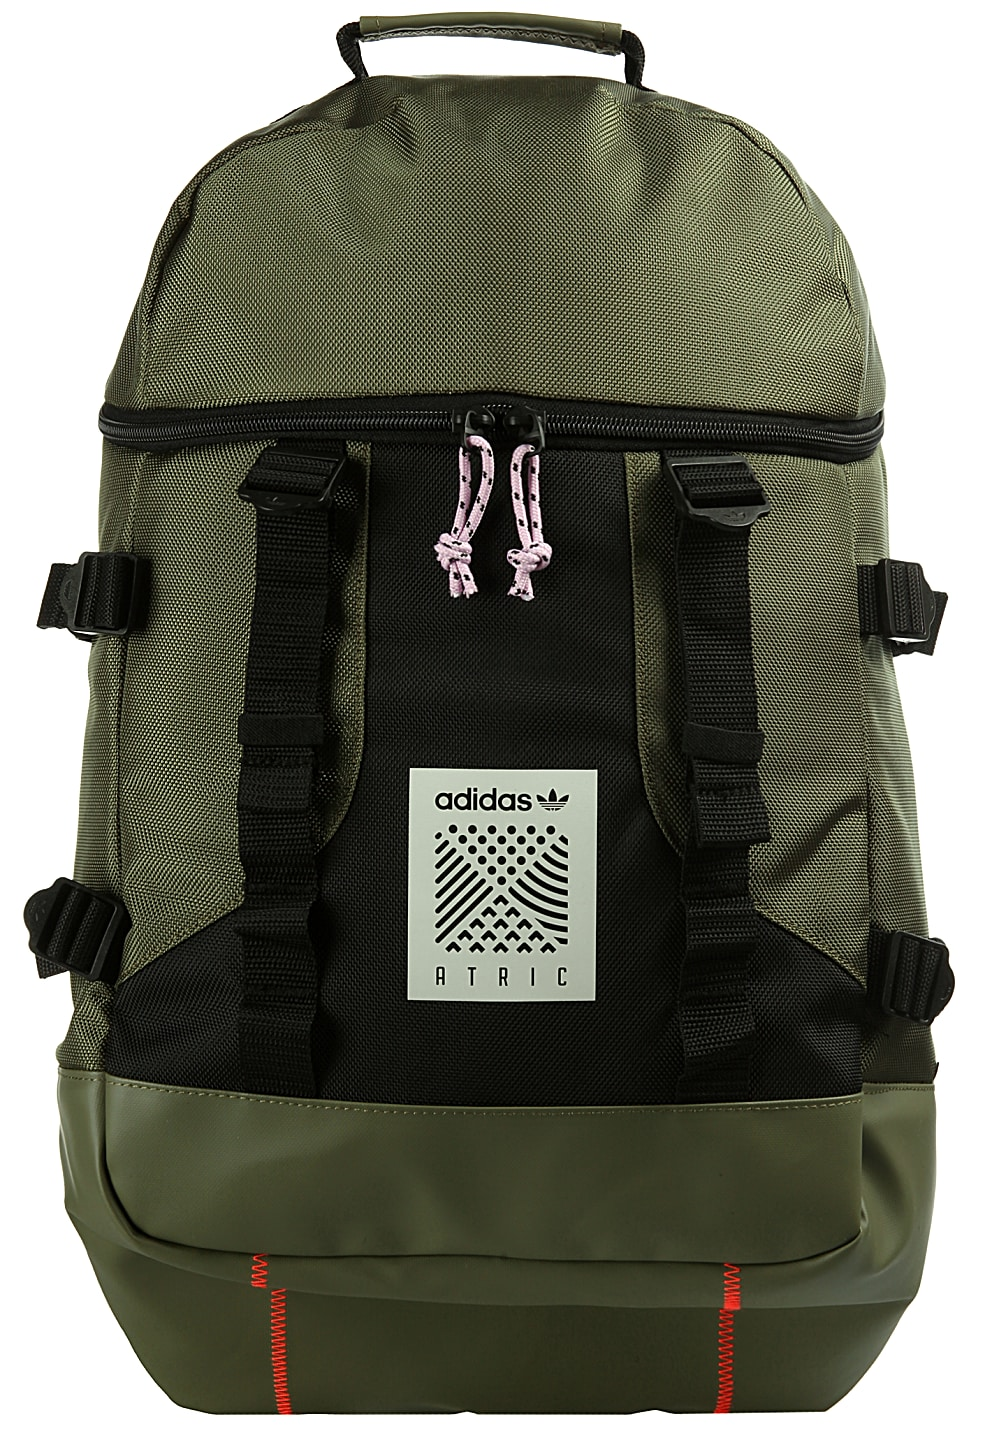 ADIDAS ORIGINALS Backpack L - Backpack - Green - Planet Sports